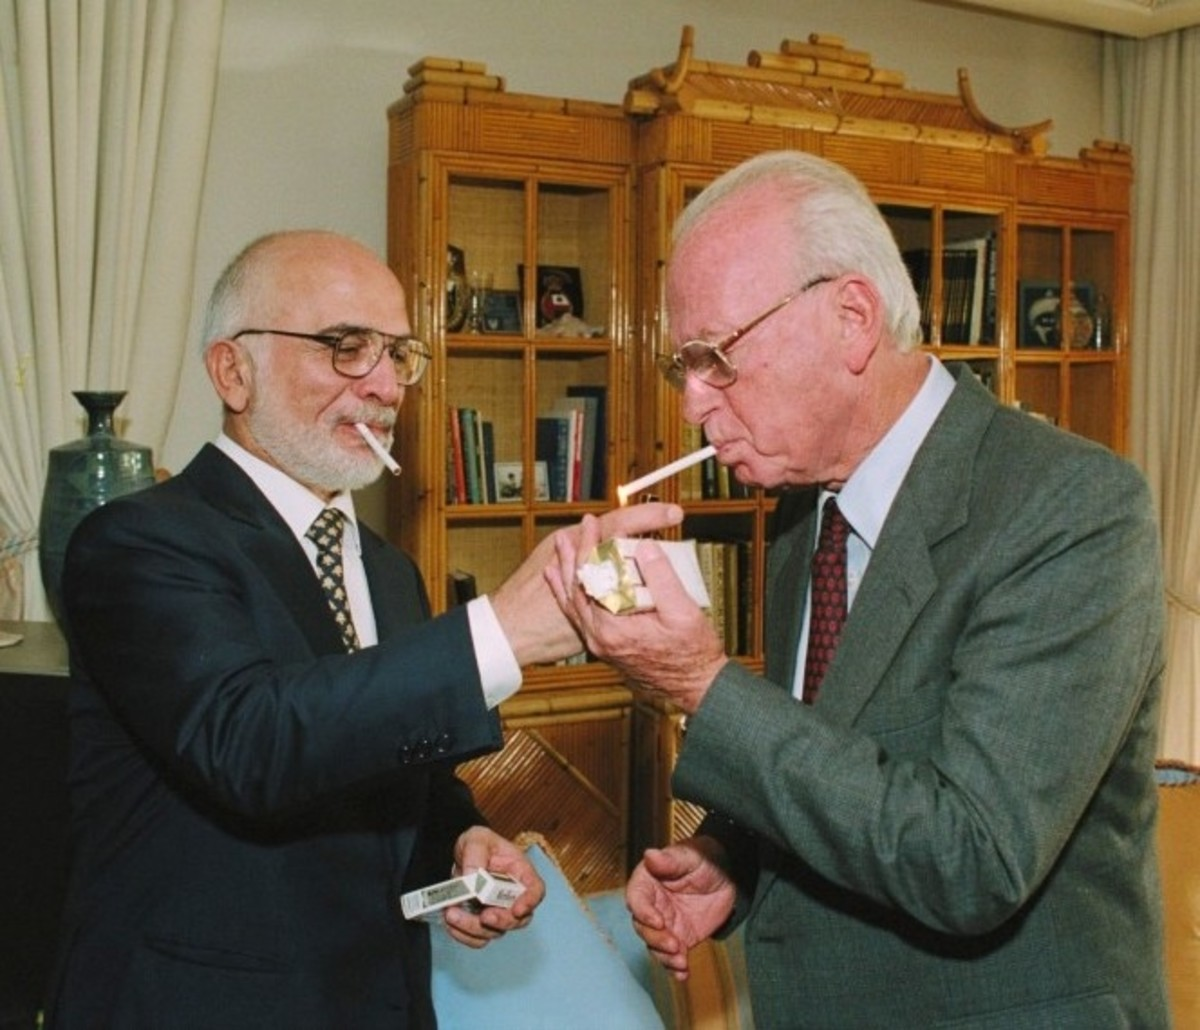 Jordan King Hussein I  Entertains Israel Prime Minister Rabin at His Royal Residence in Aqaba, Jordan, after Peace Treaty Signing Ceremony in Jordan on October 26, 1994